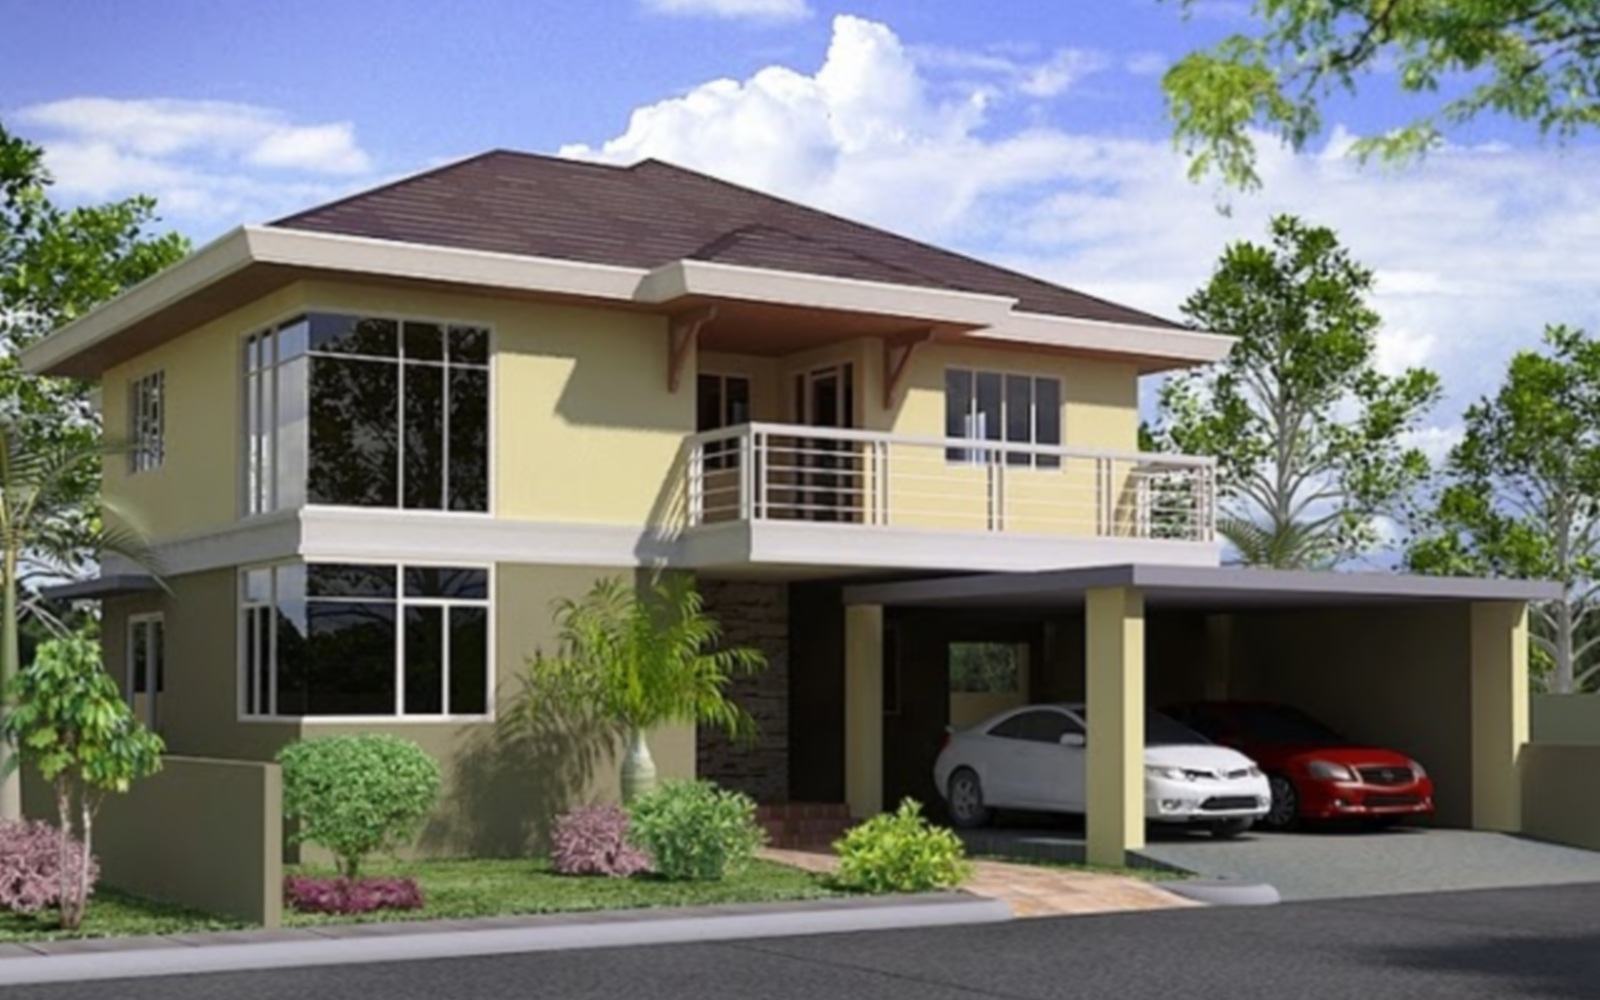 Modern house plans and designs in the philippines